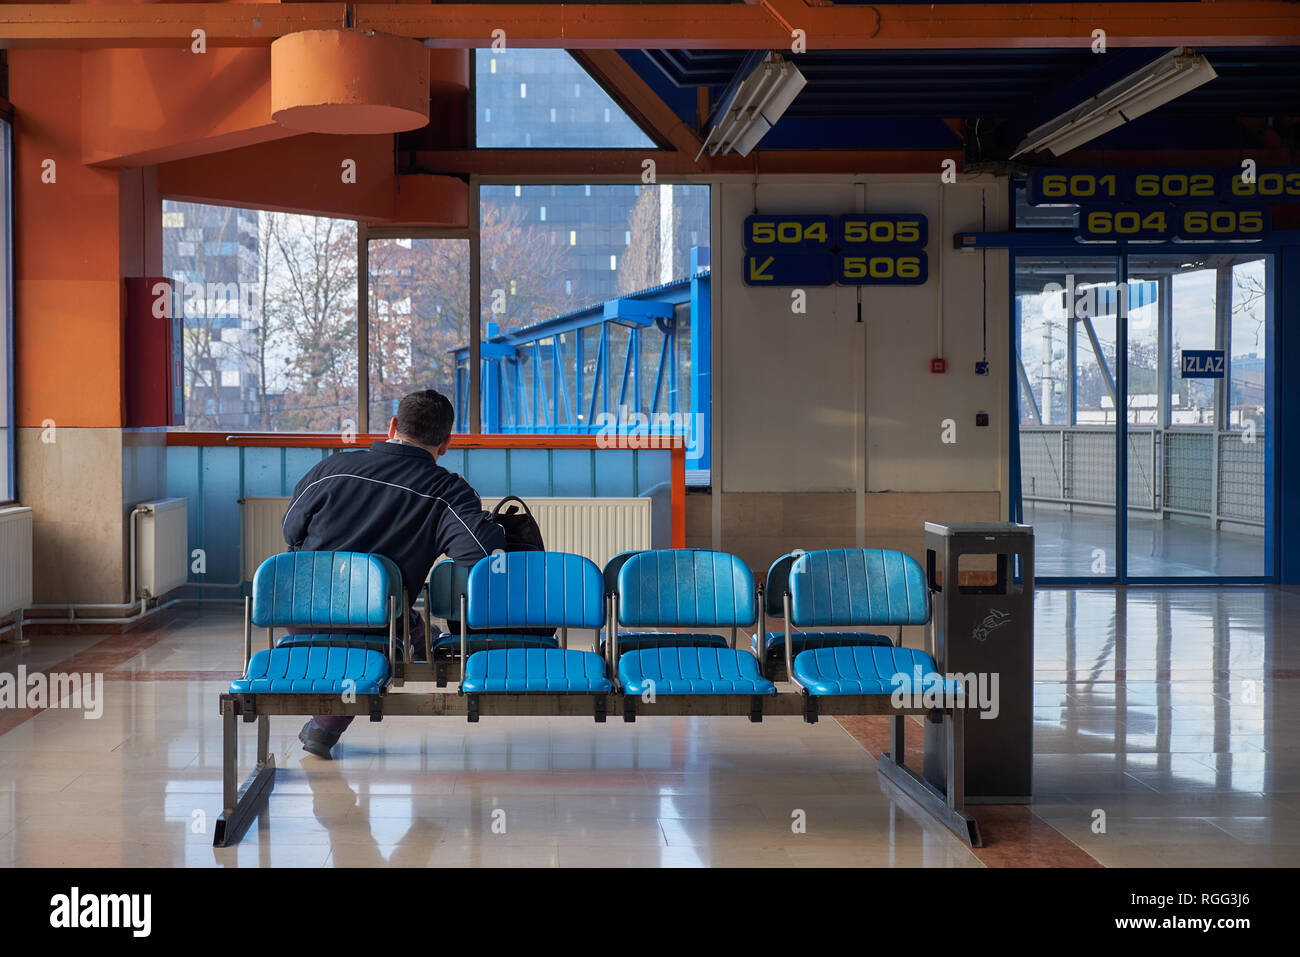 Waiting Room Of The Zagreb Bus Station With Only One Person Waiting Seventies Orange And Blue Decor Stock Photo Alamy